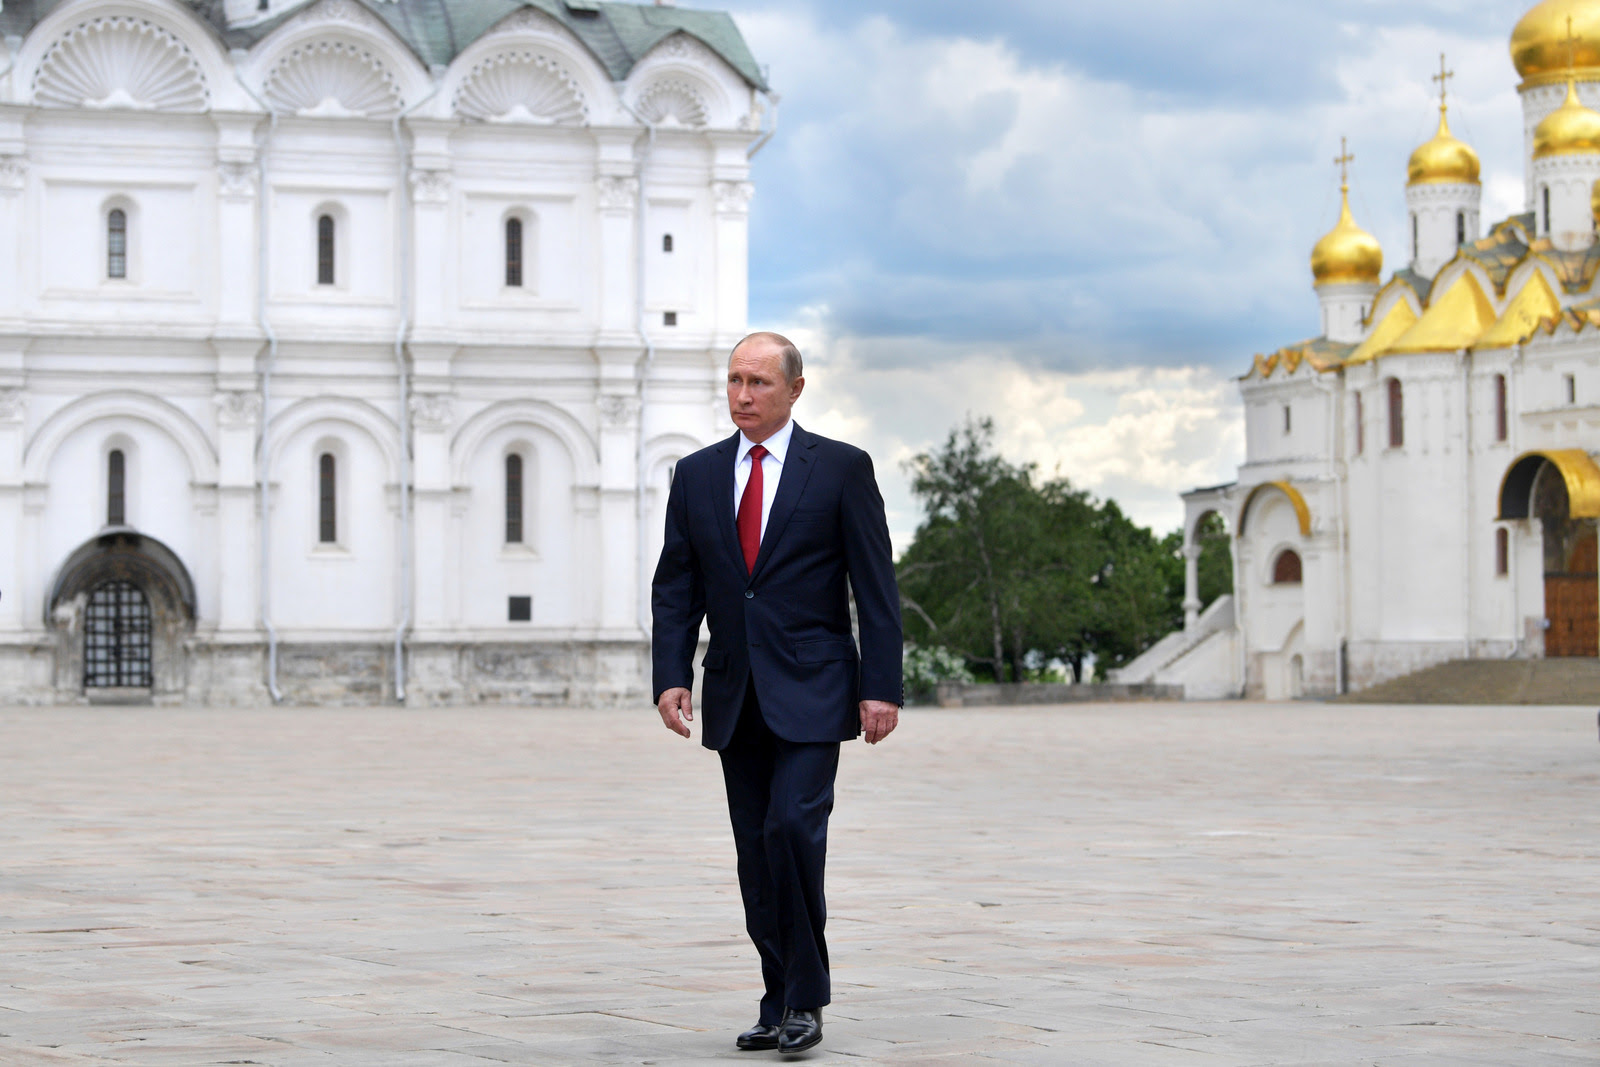 Russian President Vladimir Putin walks along the Cathedral Square of the Kremlin, to take part in a holiday reception in Moscow, Monday, June 12, 2017. (Alexei Druzhinin/Sputnik)